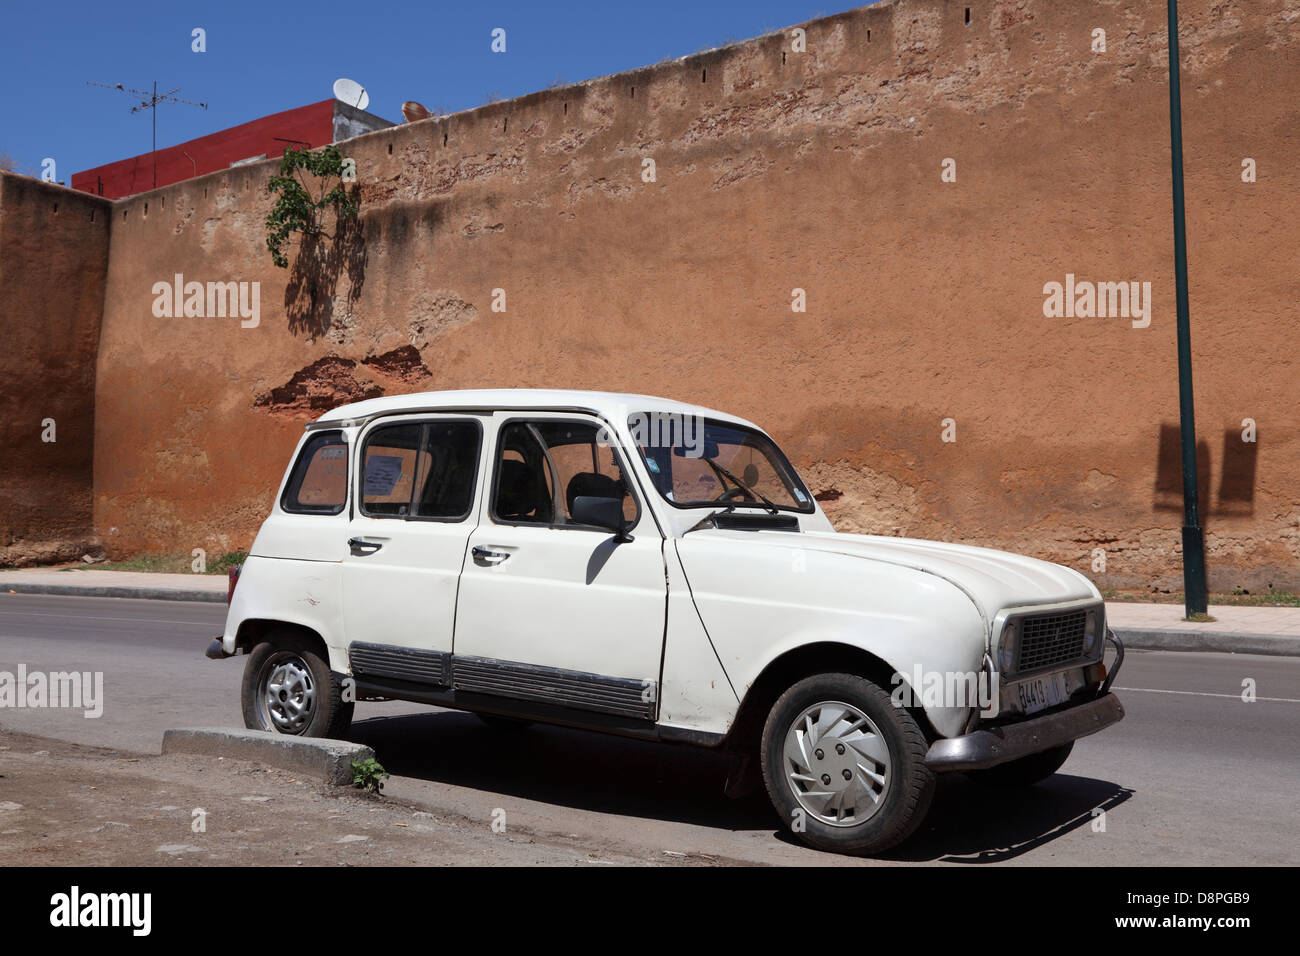 garage renault salon de provence Old Renault R4 in the old town of Rabat, Morocco - Stock Image